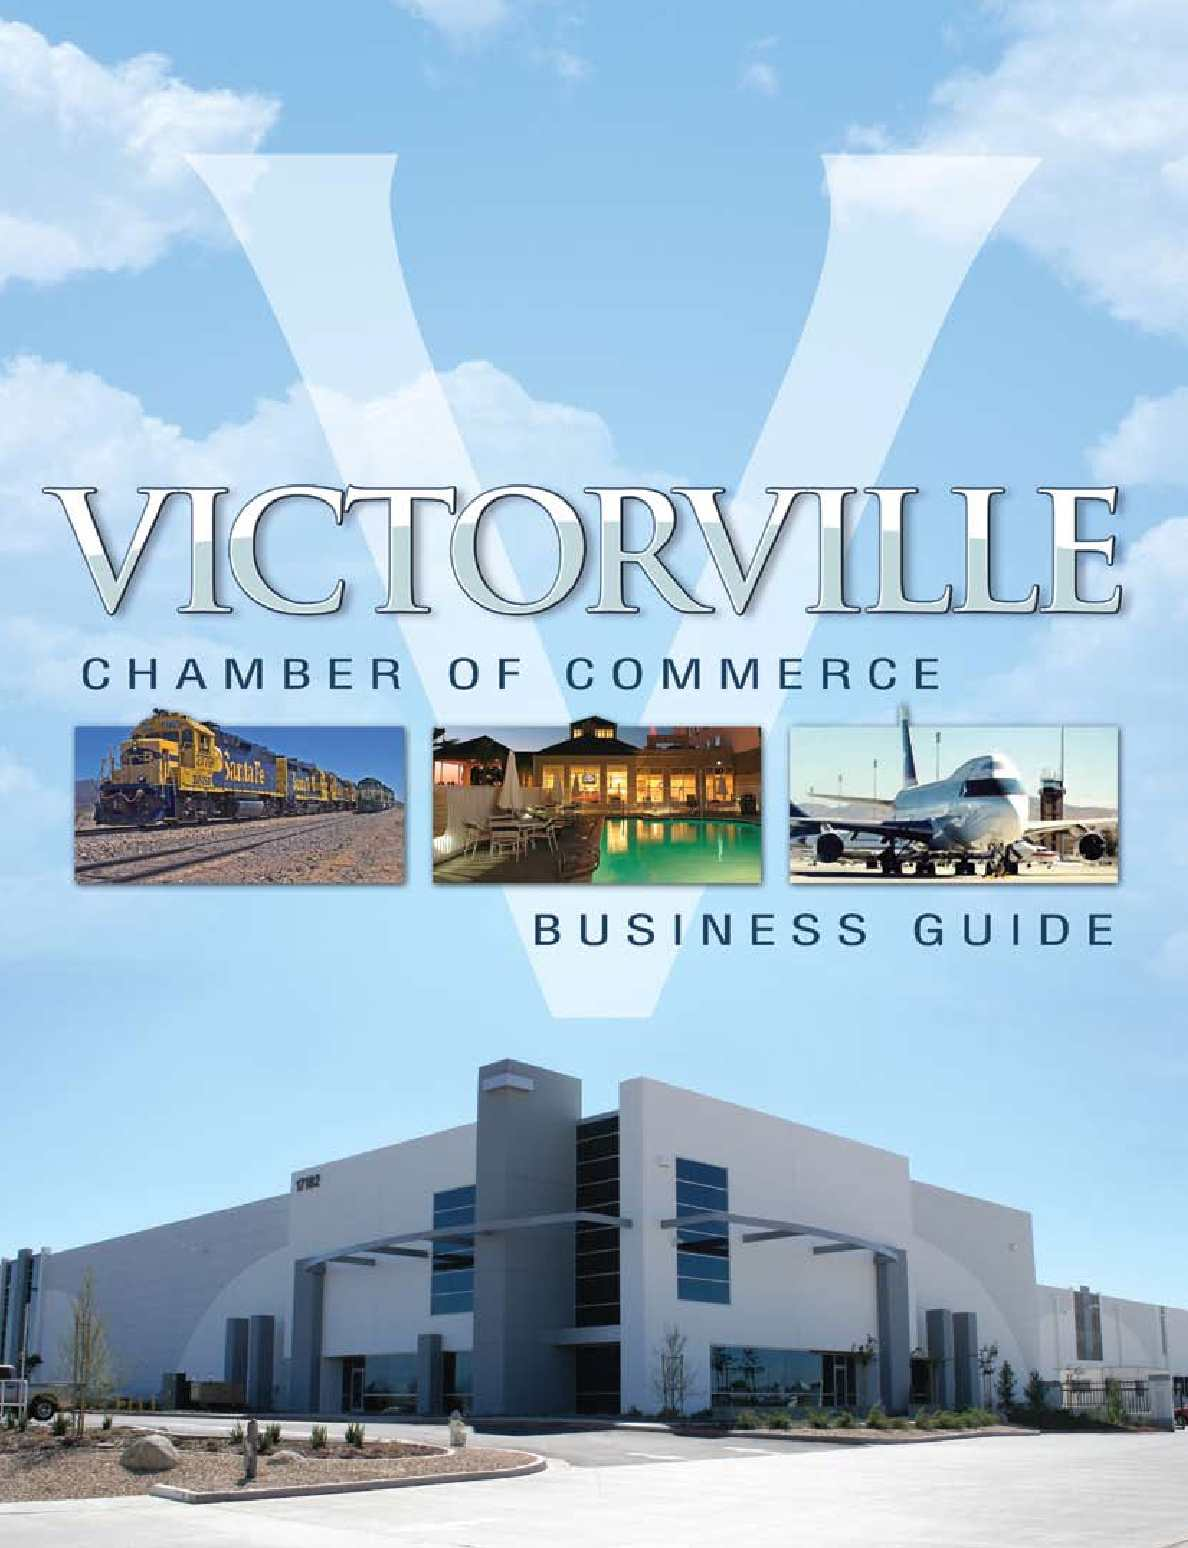 Calaméo - Victorville Chamber of Commerce